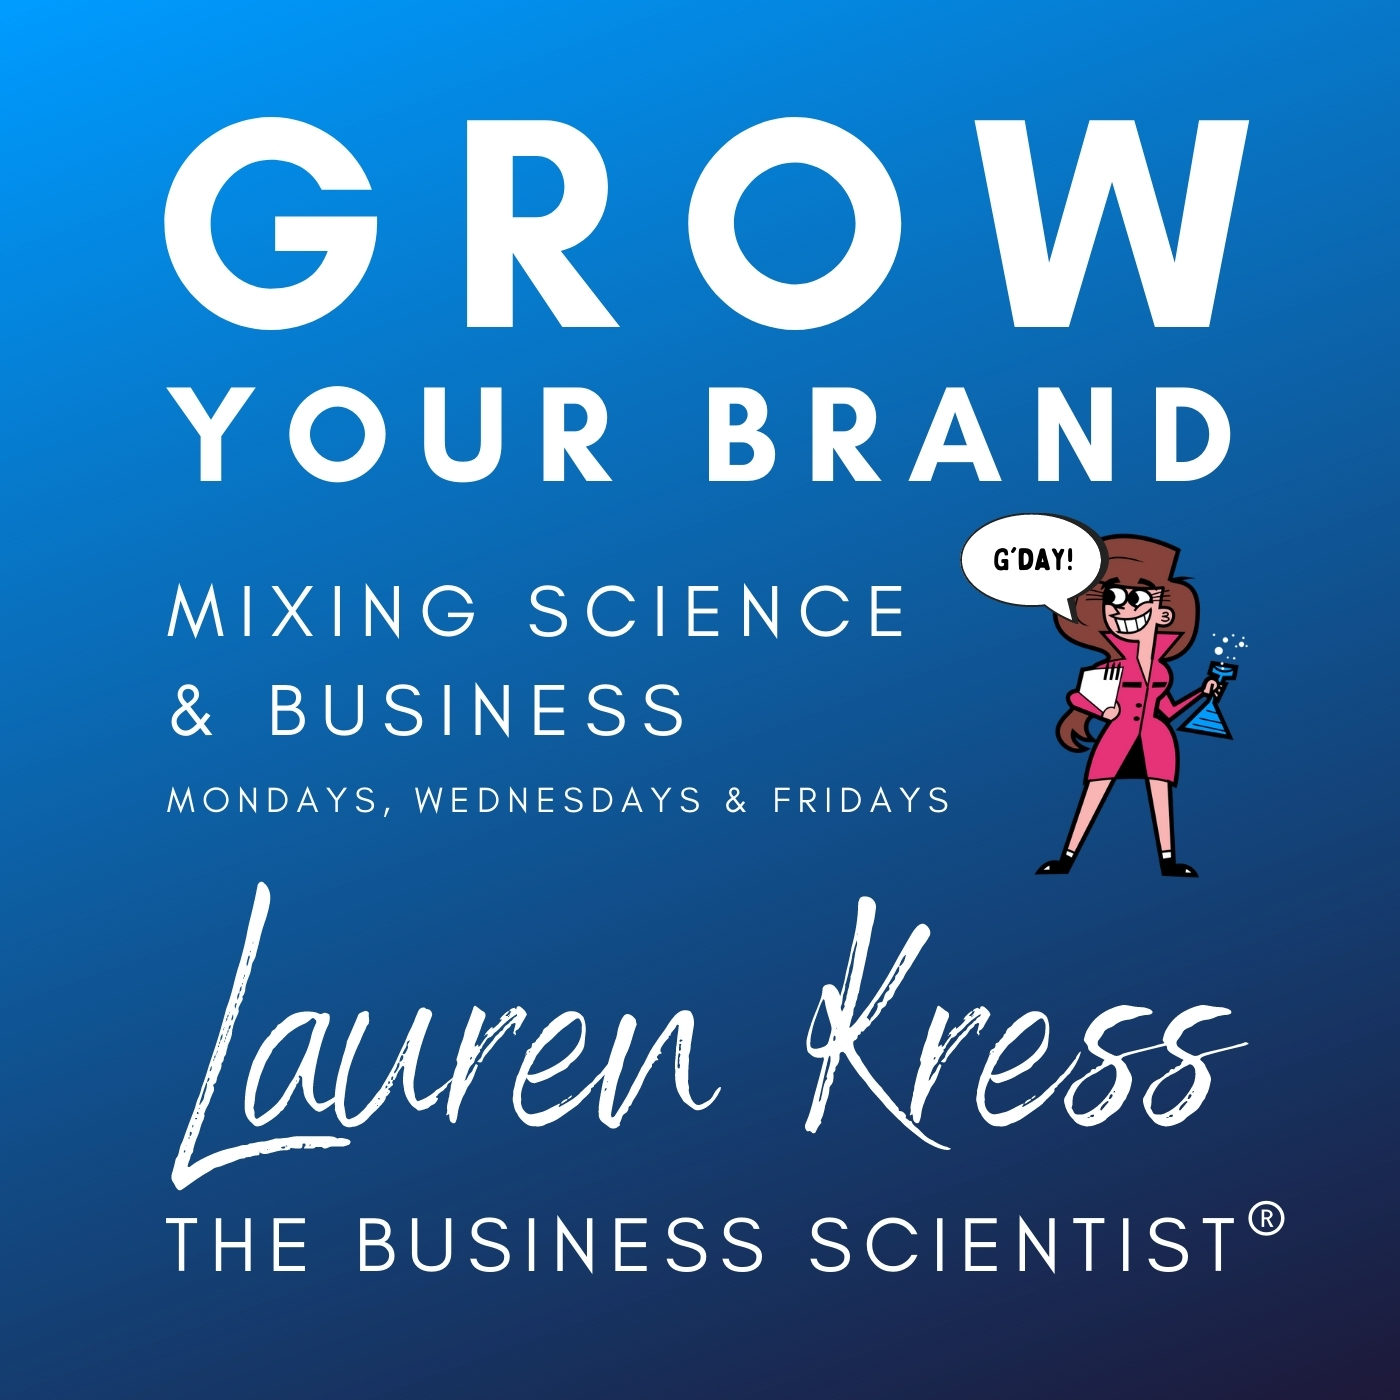 Mixing Science & Business so you can learn as you grow